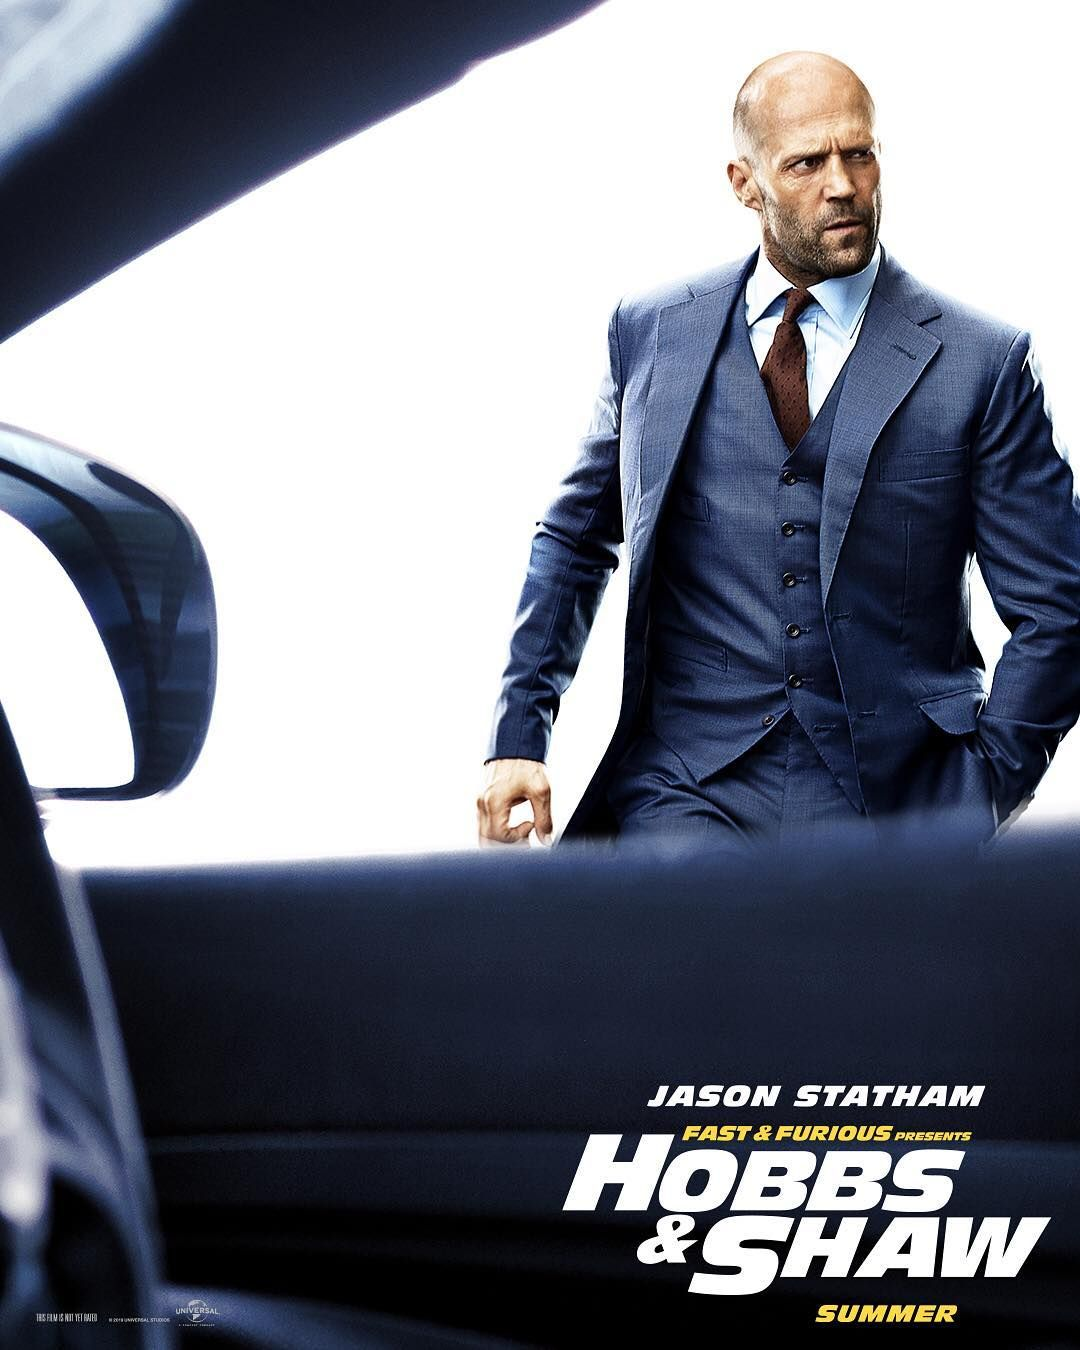 Jasonstatham Is Deckard Shaw In Fast Furious Present Fast And Furious Hobbs Full Movies Online Free